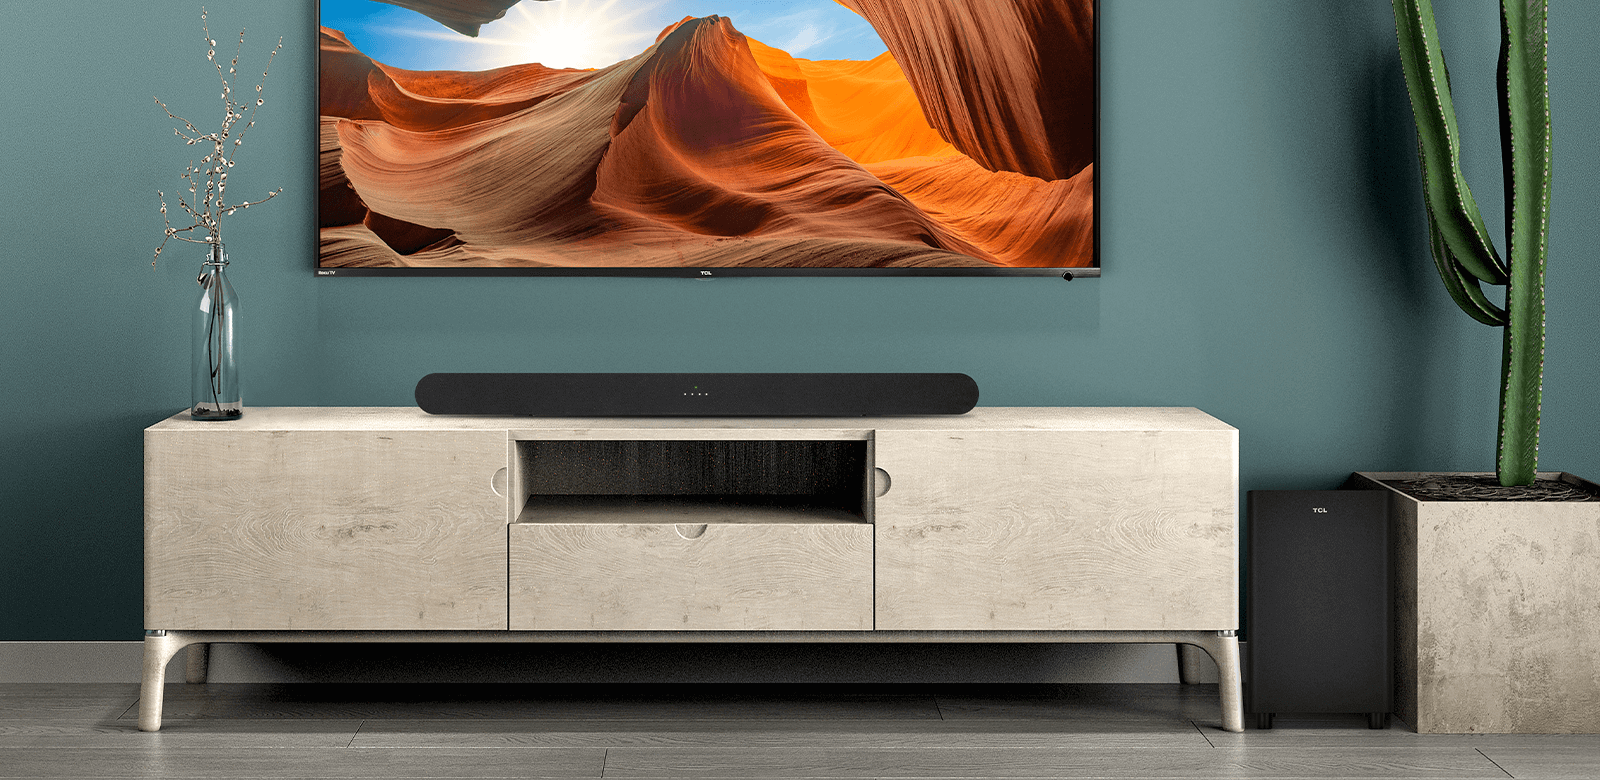 Alto 6 Roku TV Ready Sound Bar